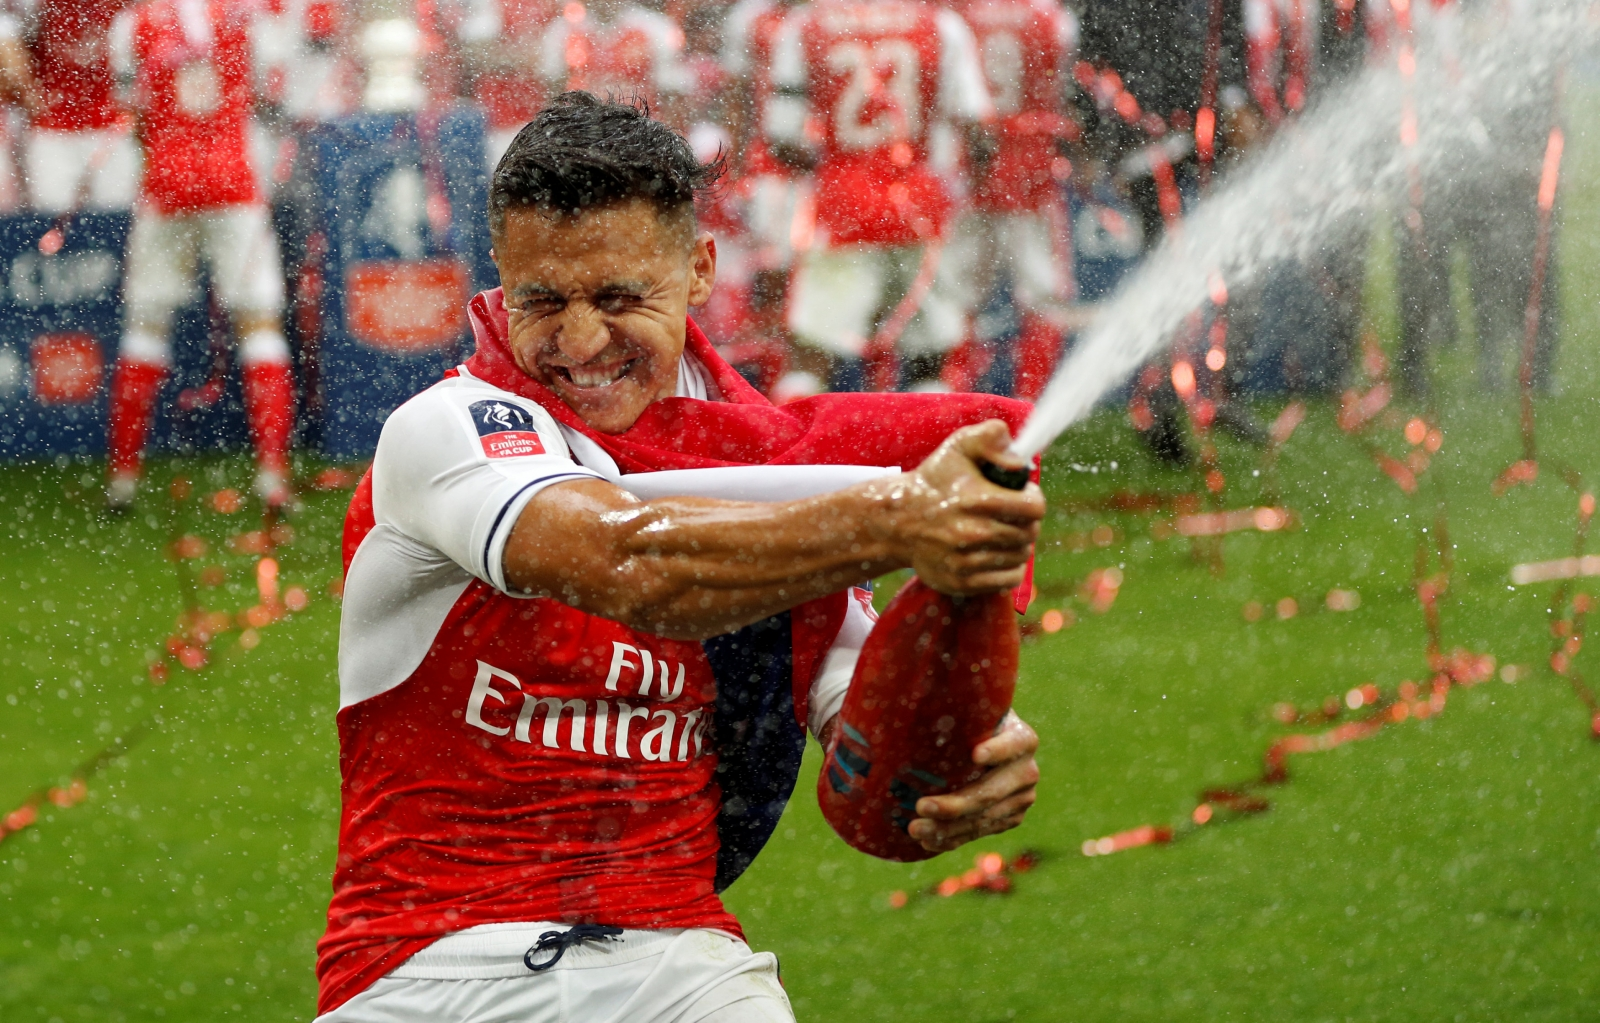 Arsenal legend Parlour: £300000-per-week for Alexis? Pay the man!